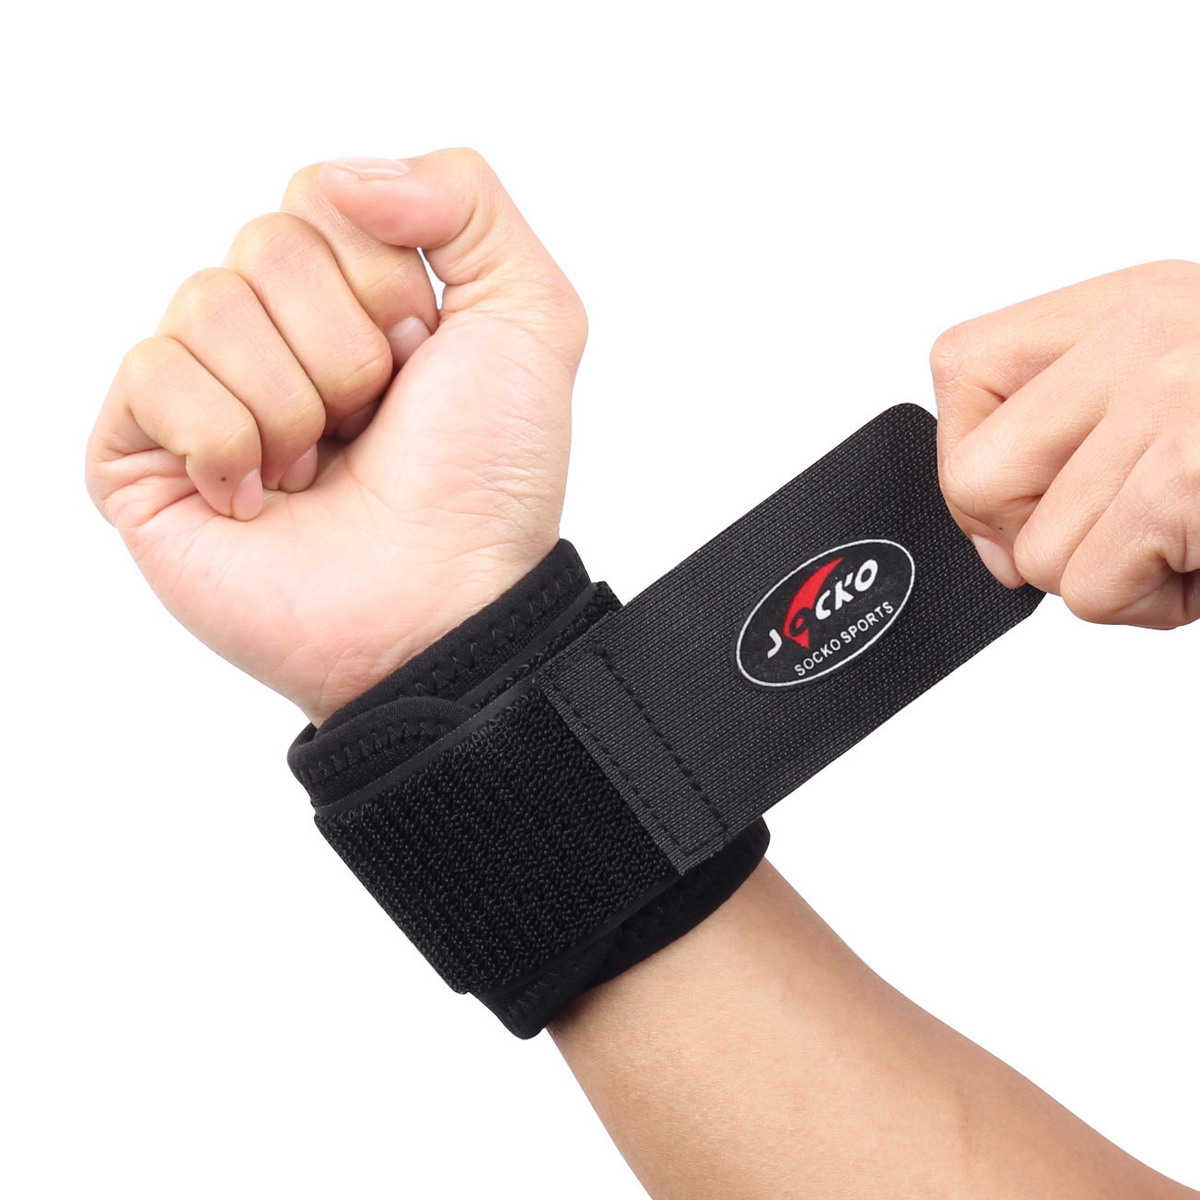 1 PCS Free Shipping Classic Sports Elastic Stretchy Wrist Joint Brace Support Wrap Band - Black(China (Mainland))